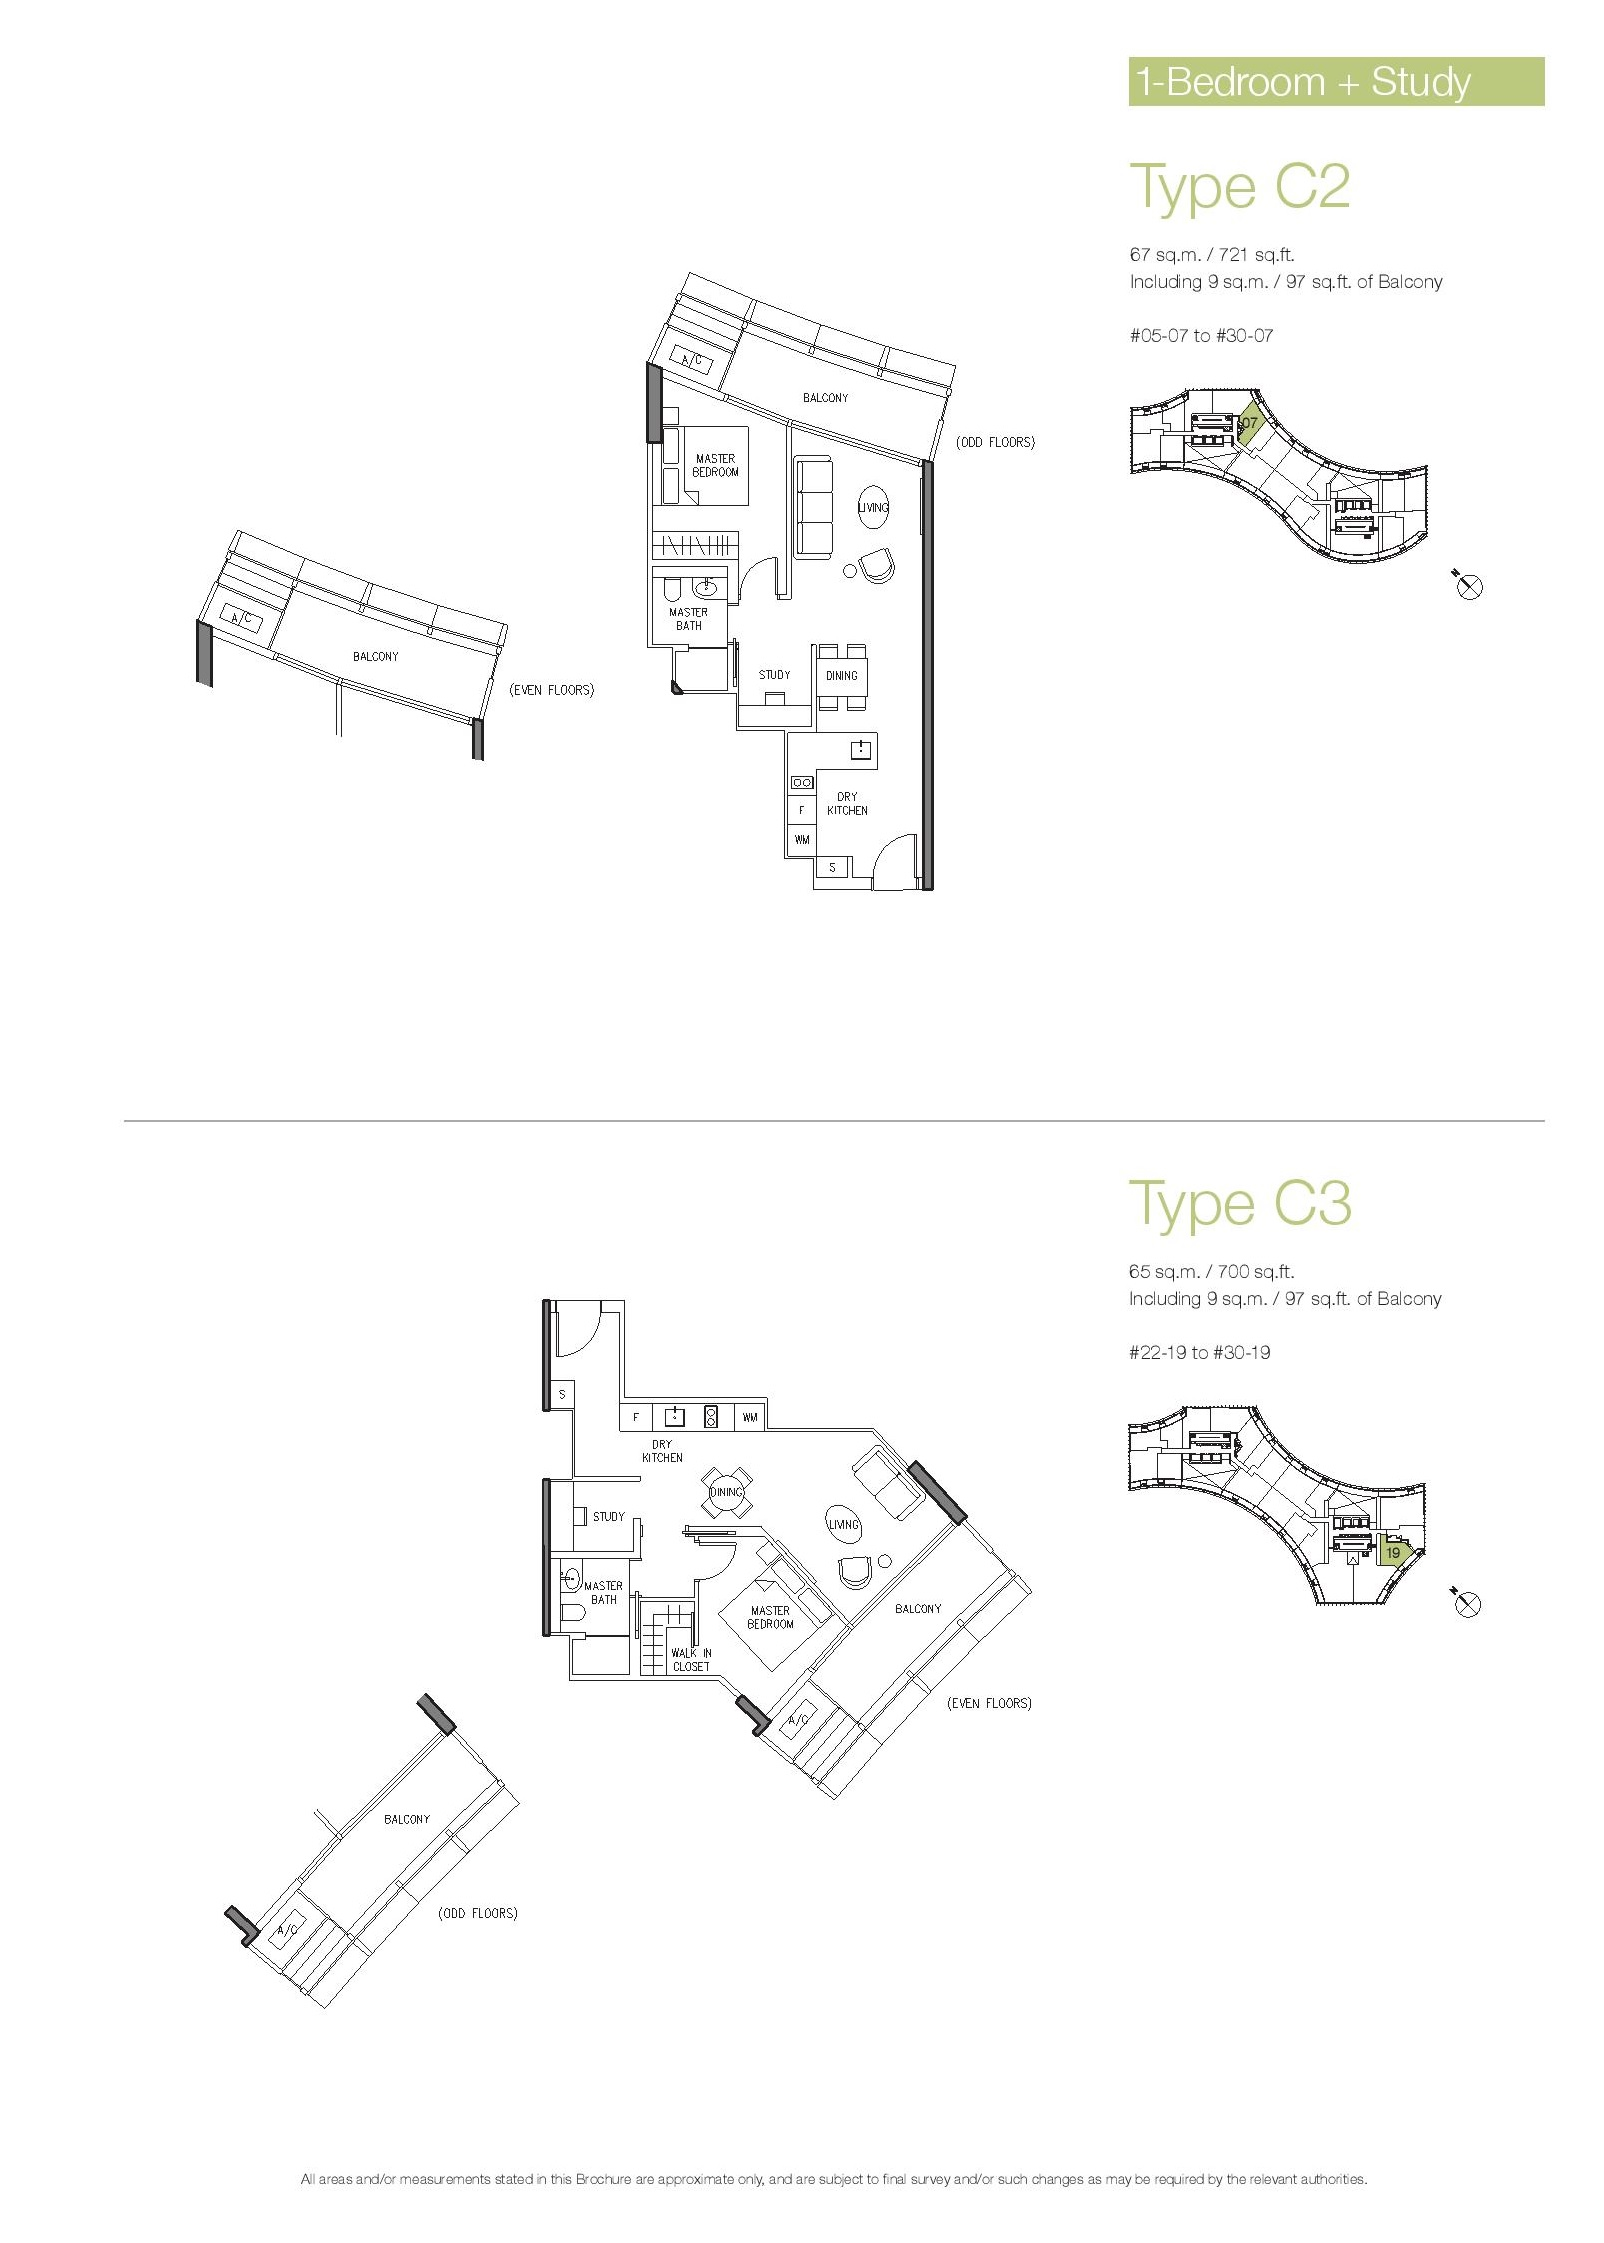 Duo Residences 1 Bedroom + Study Floor Plan Type C2, C3